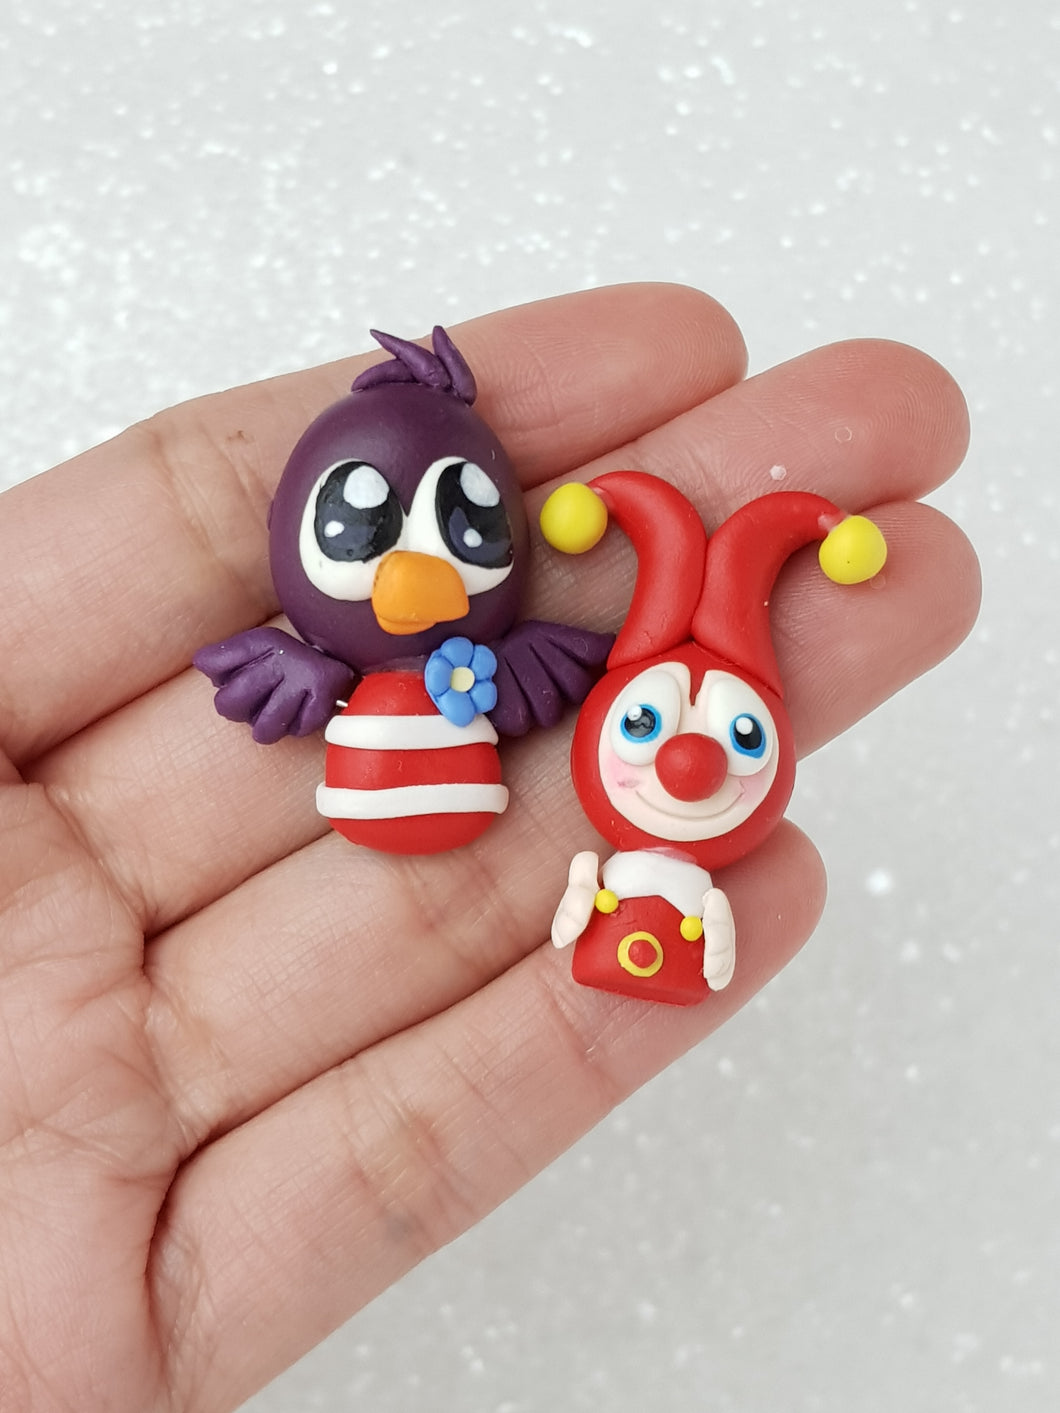 Clay Charm Embellishment - Bird or Clown - Crafty Mood